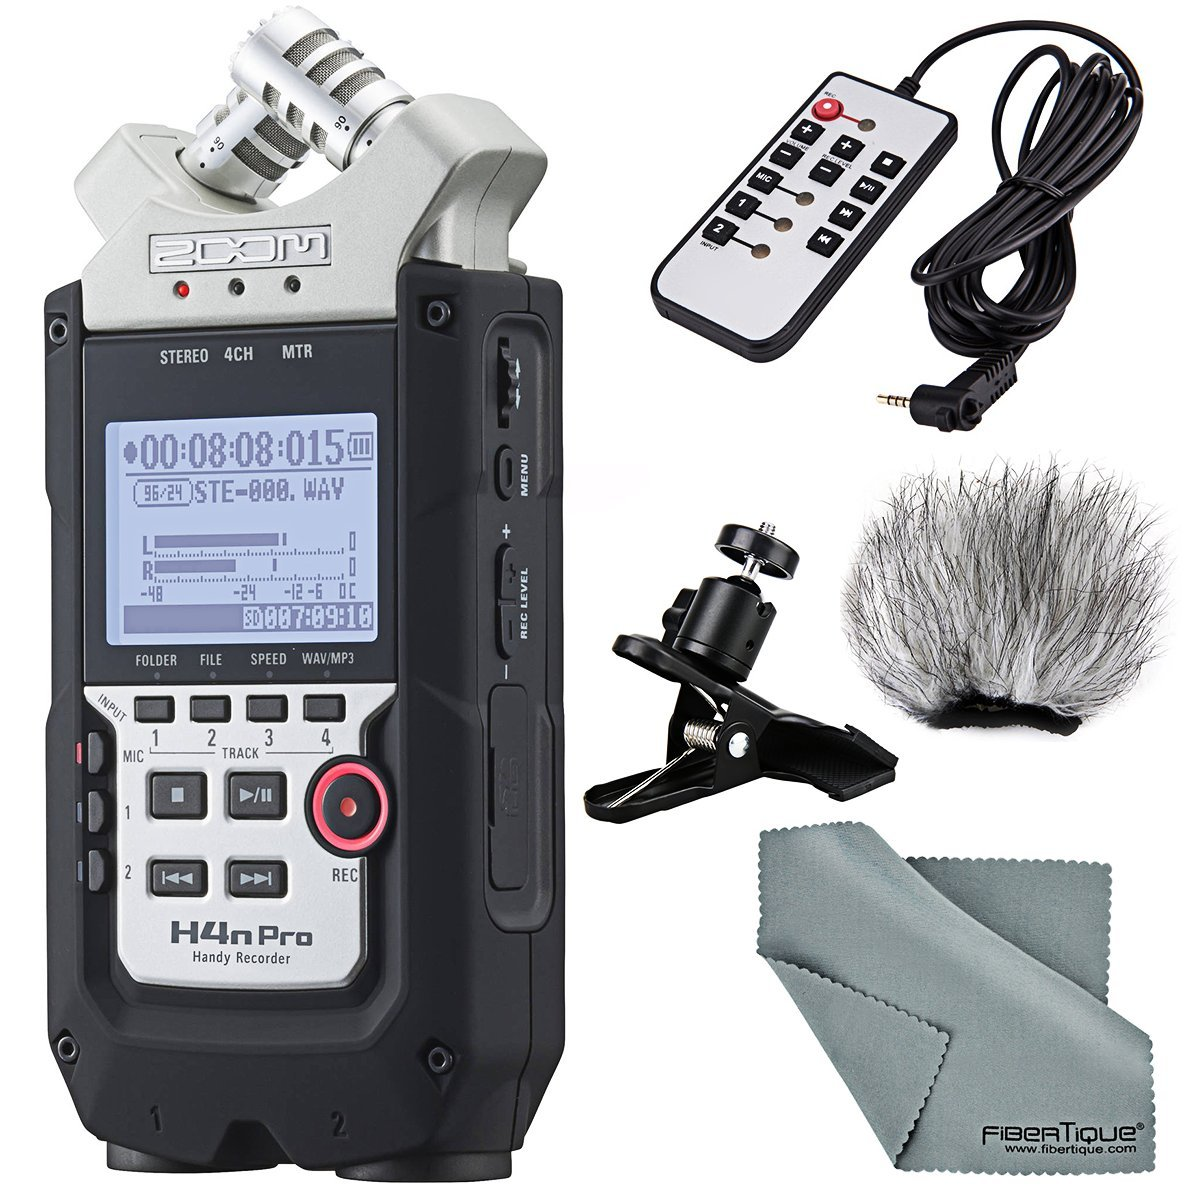 ZOOM H4N PRO Handy 4-Channel Recorder Bundle with Remote + Windscreen + Multi-function Clip Clamp + FiberTique Cleaning Cloth